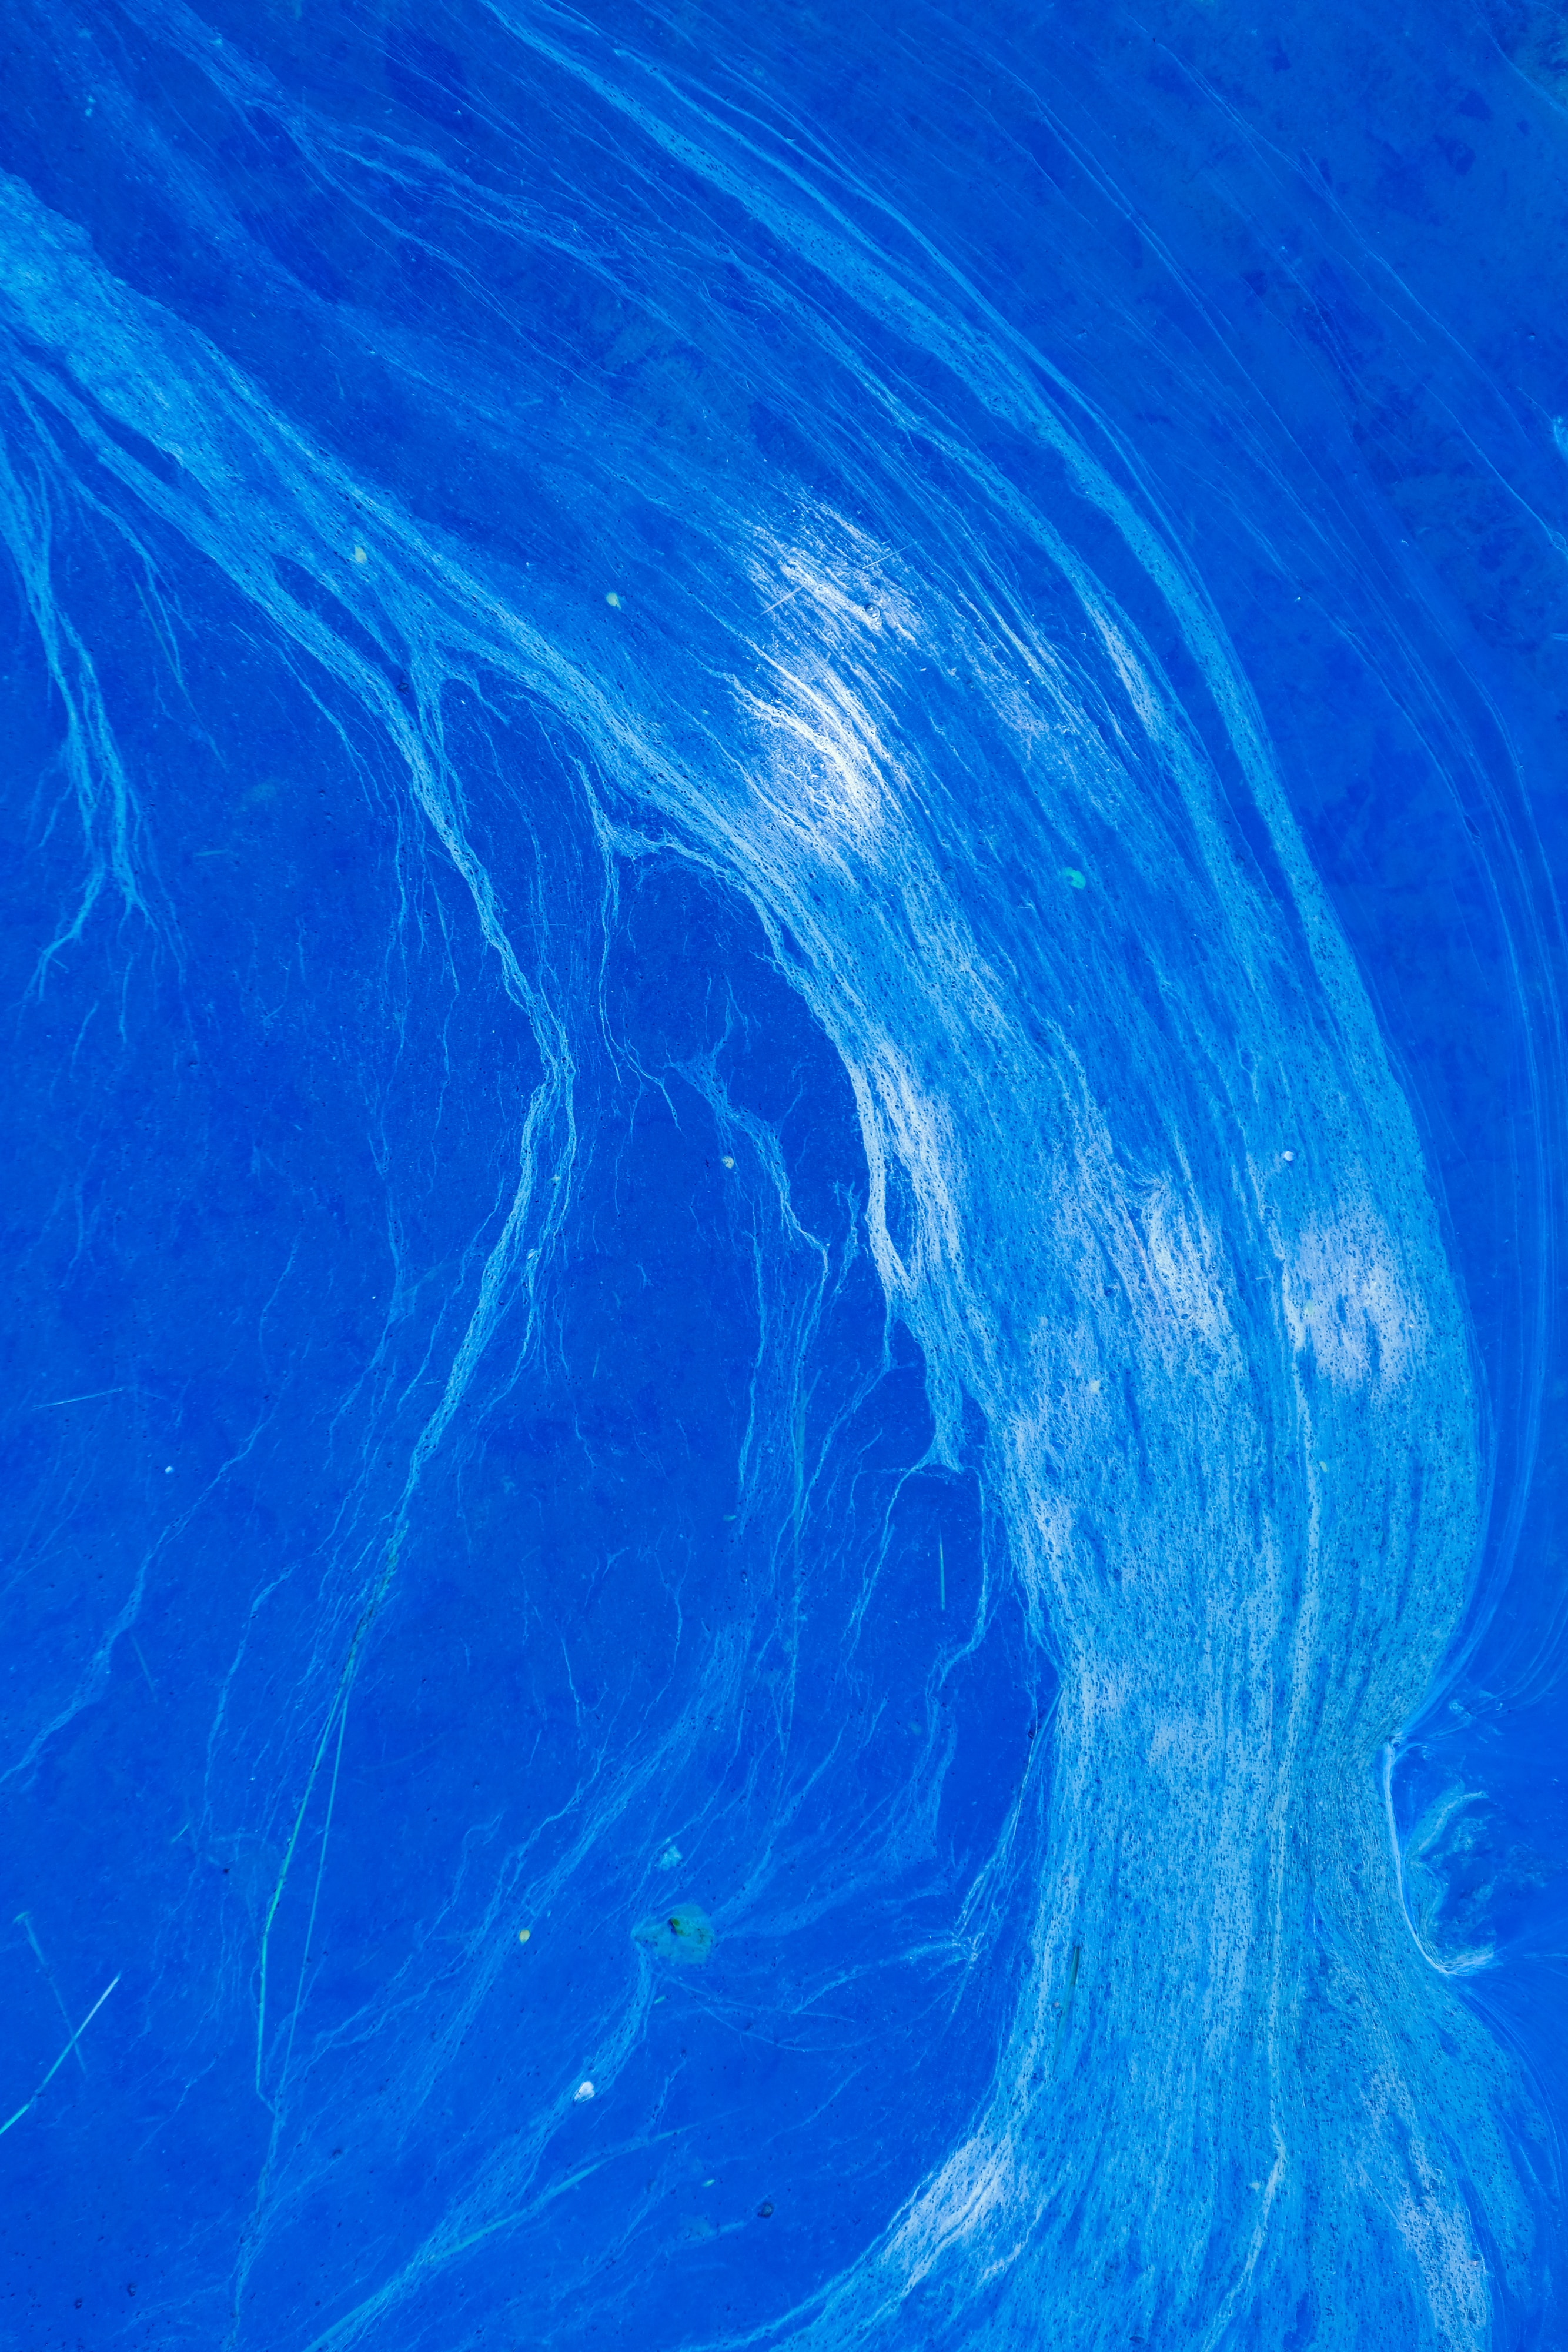 141986 download wallpaper Abstract, Divorces, Liquid, Texture screensavers and pictures for free